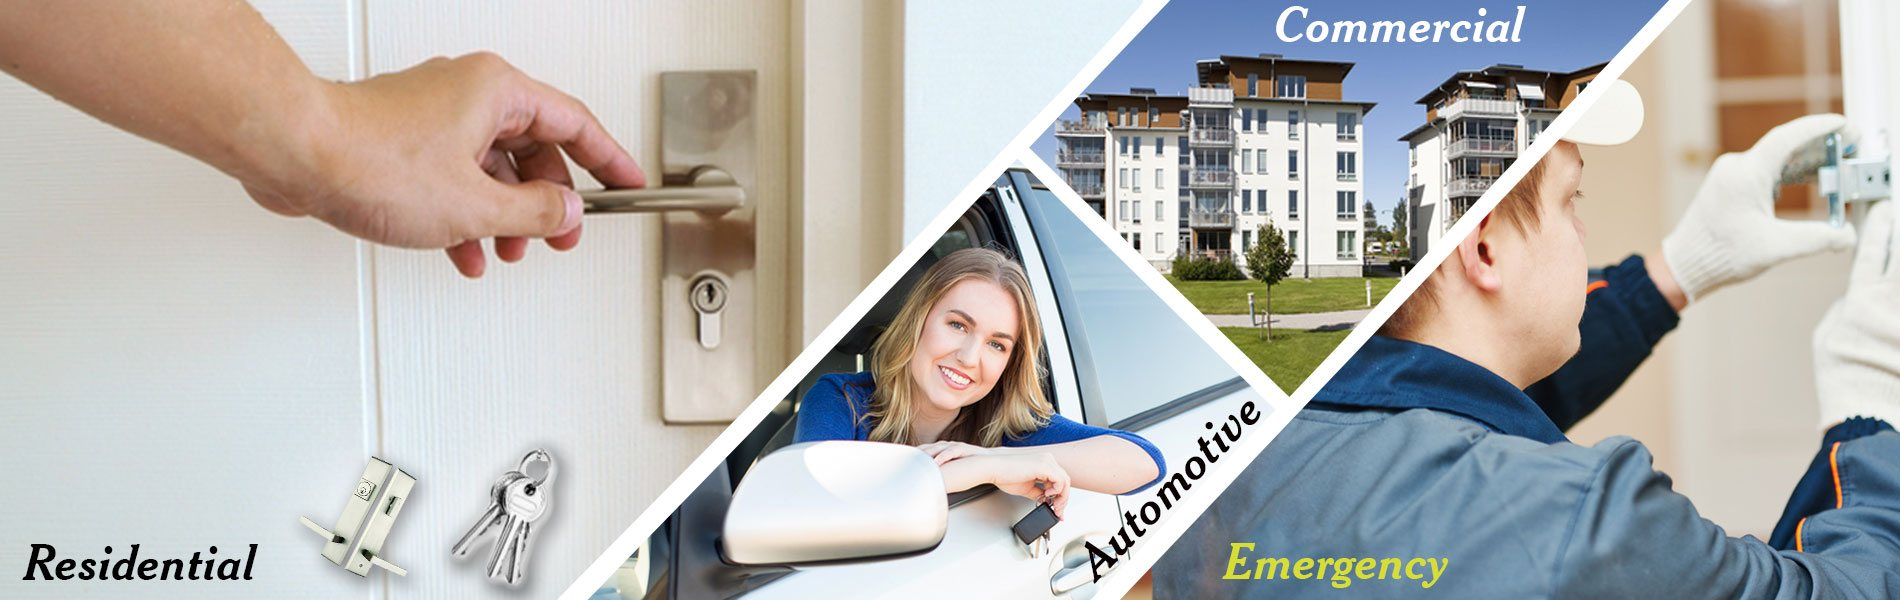 Safe Key Locksmith Service San Antonio, TX 210-780-7327